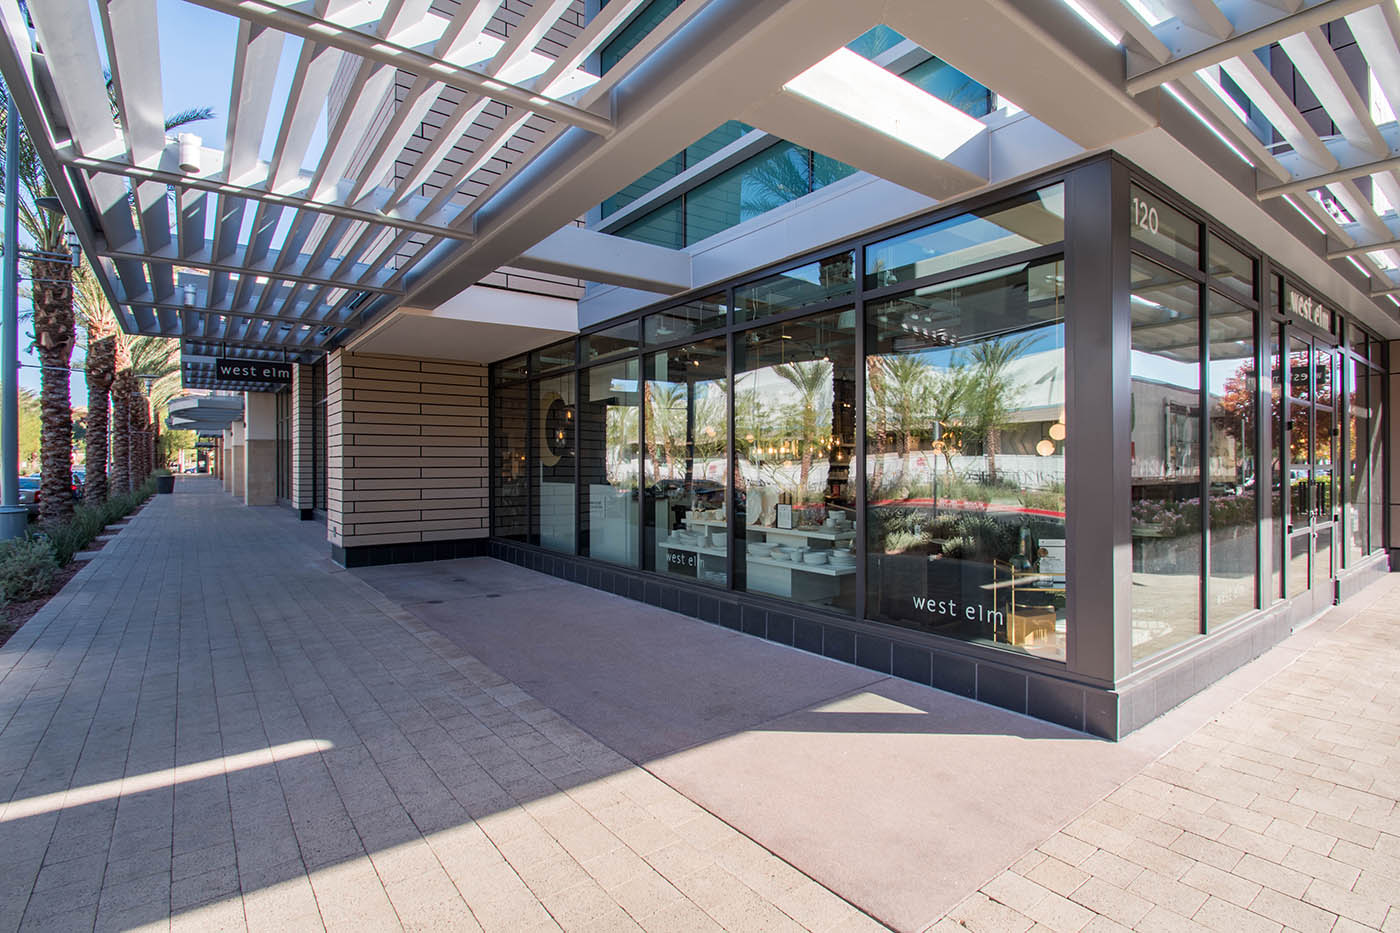 West Elm - Commercial Glass Storefront | A Cutting Edge Glass & Mirror